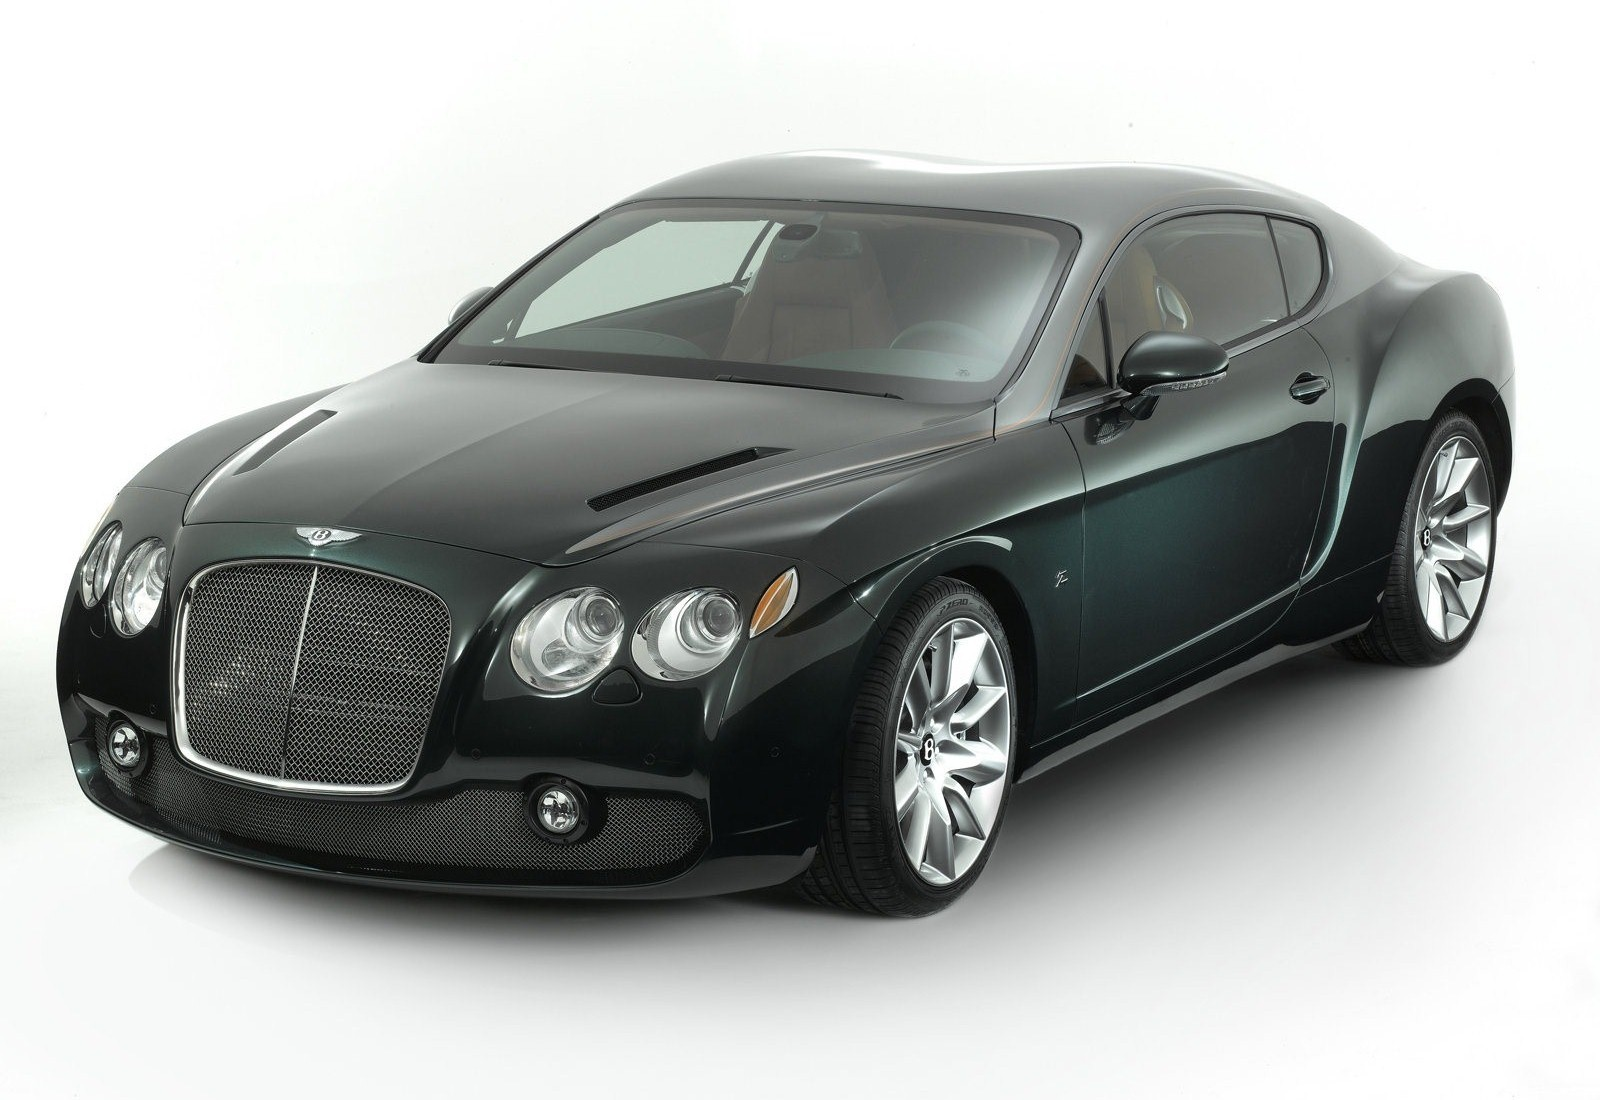 2019 Bentley GTZ Zagato Concept photo - 6